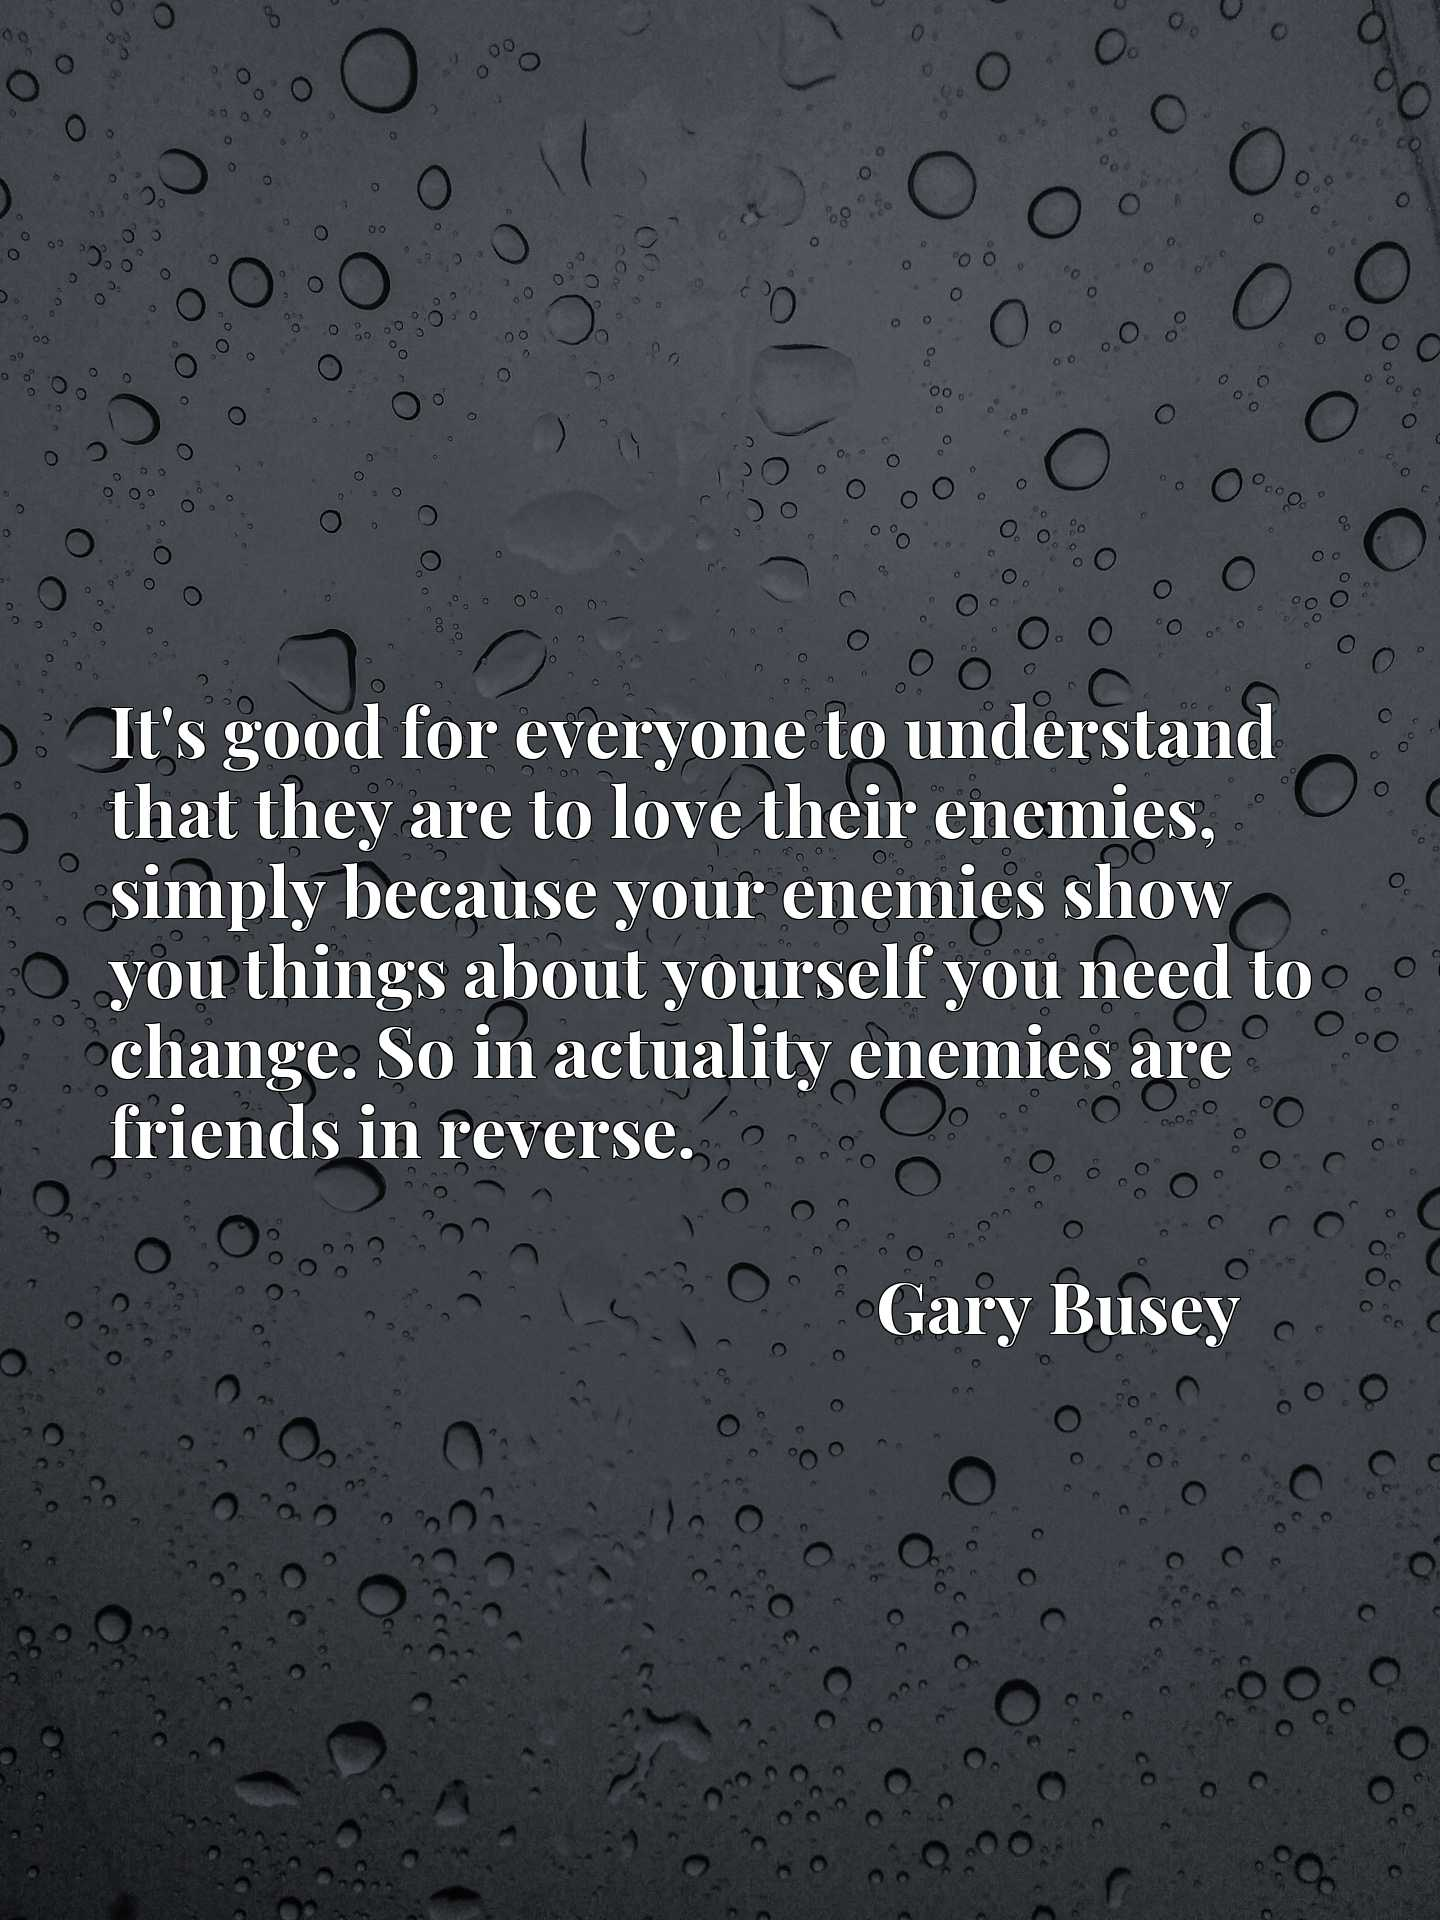 It's good for everyone to understand that they are to love their enemies, simply because your enemies show you things about yourself you need to change. So in actuality enemies are friends in reverse.